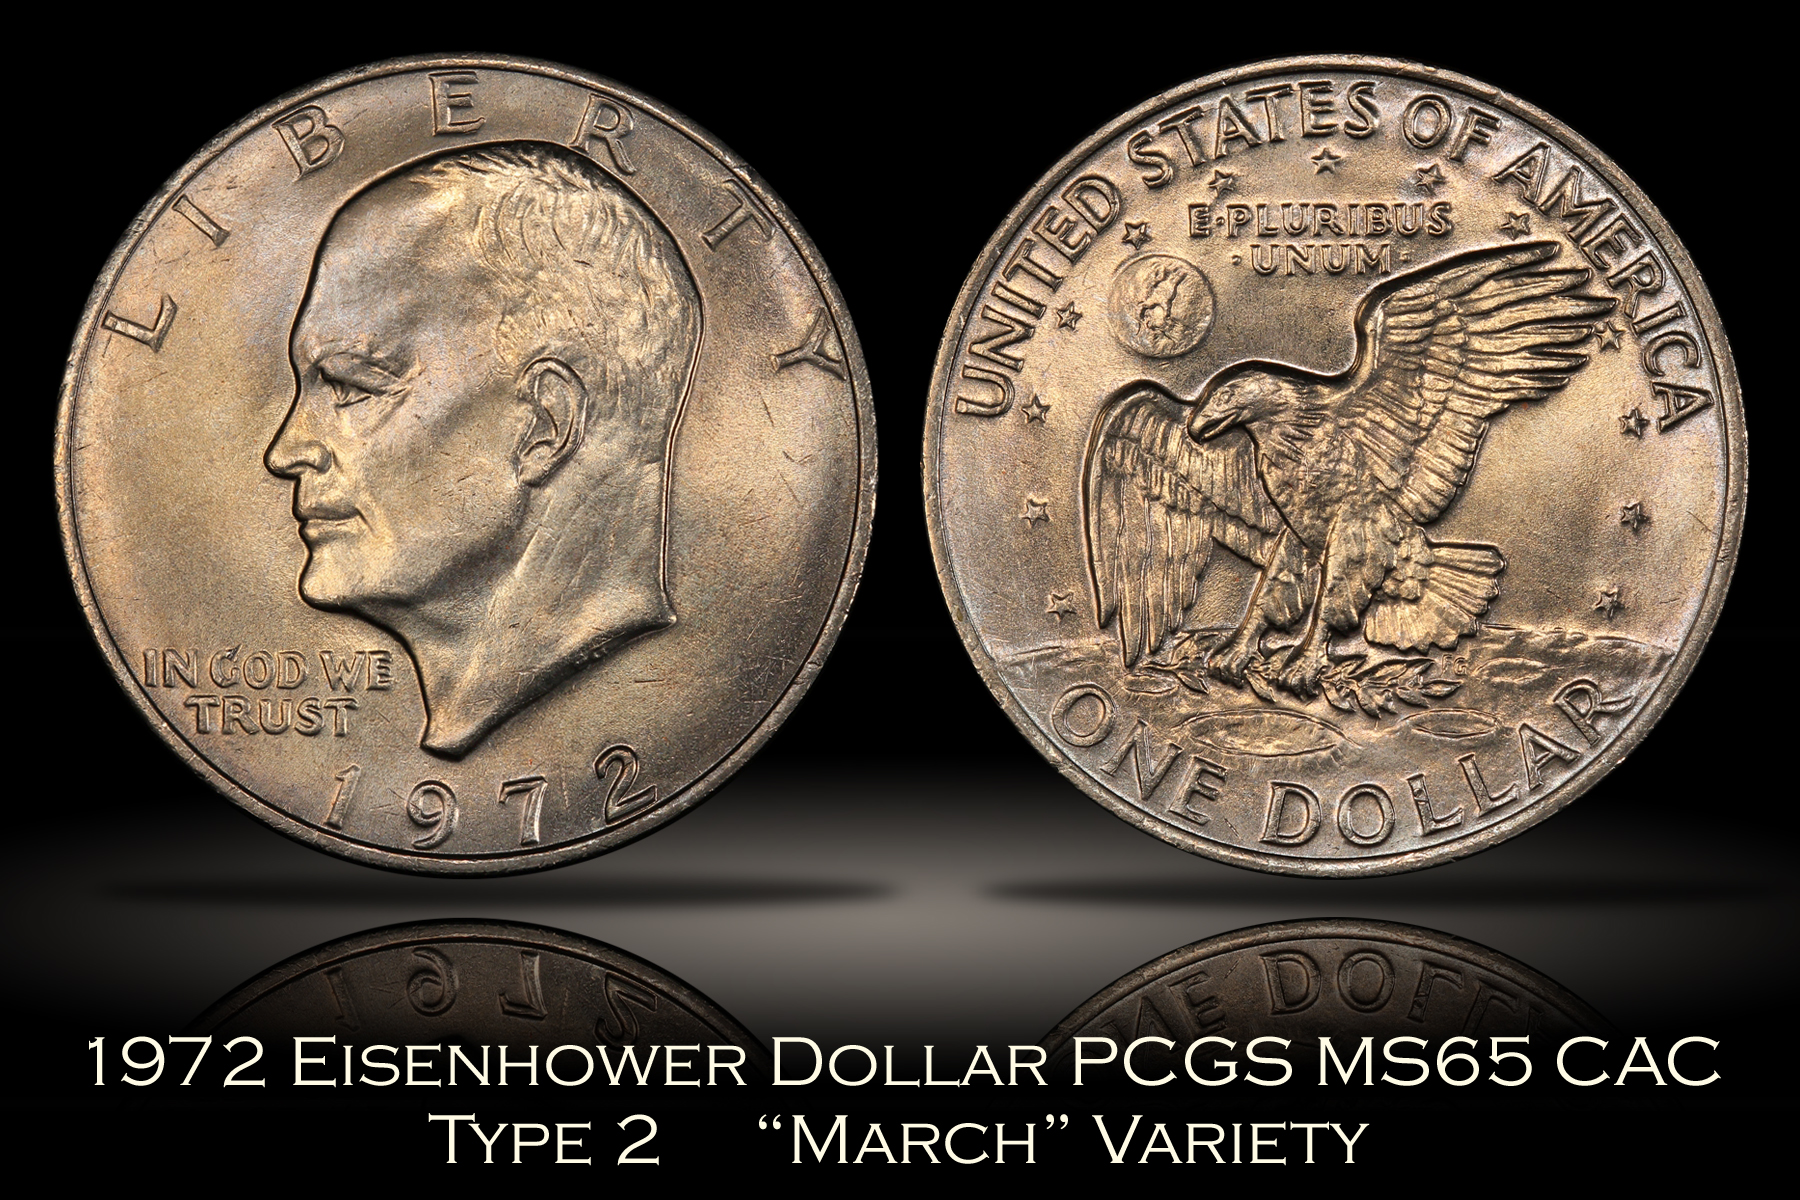 1972 Type 2 Eisenhower Dollar PCGS MS65 CAC March Variety